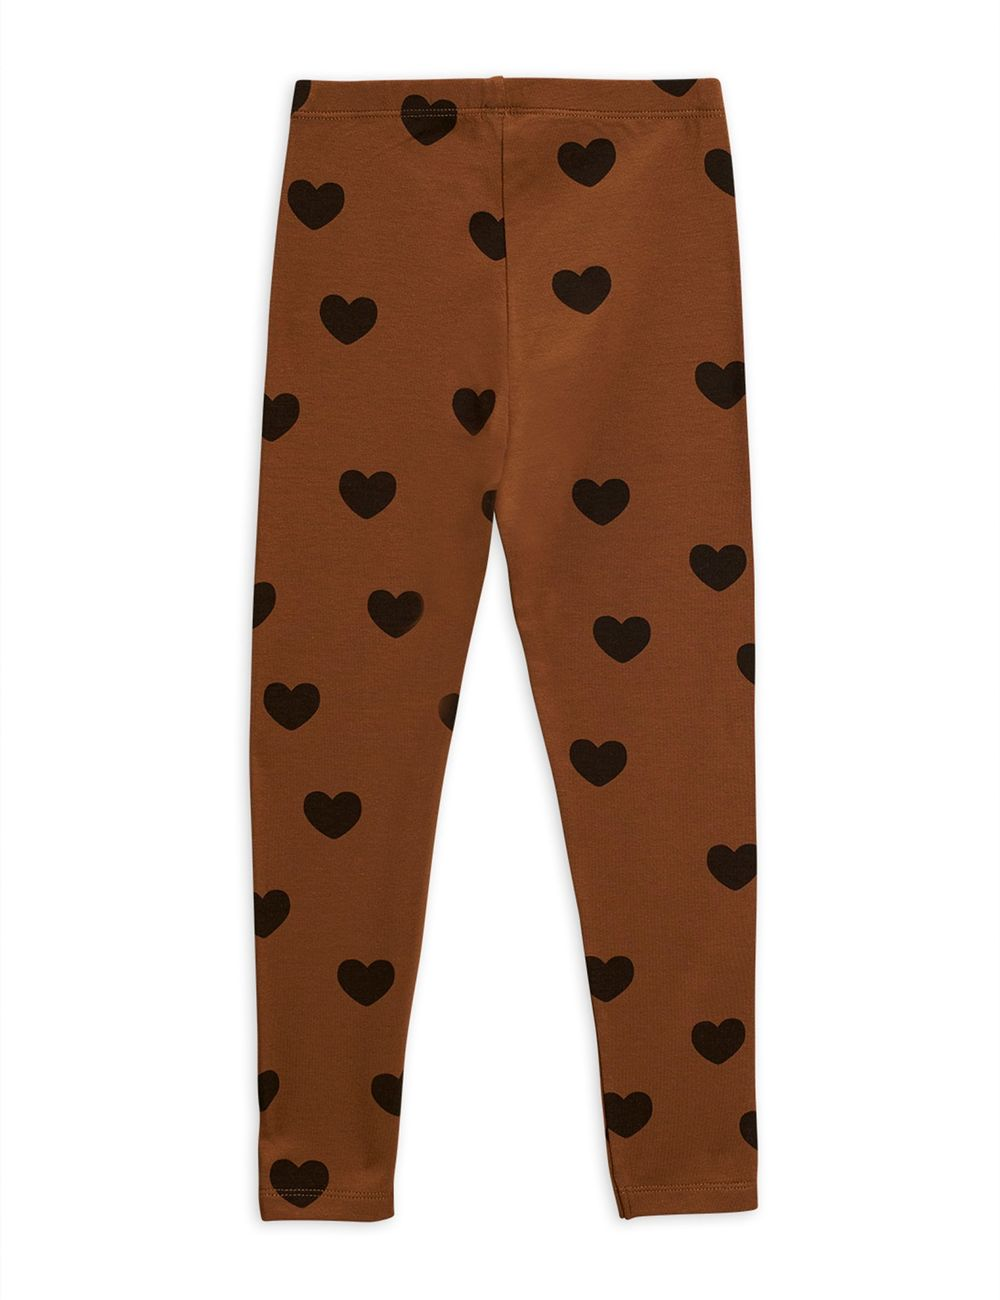 MINI RODINI HEARTS LEGGINGS, BROWN